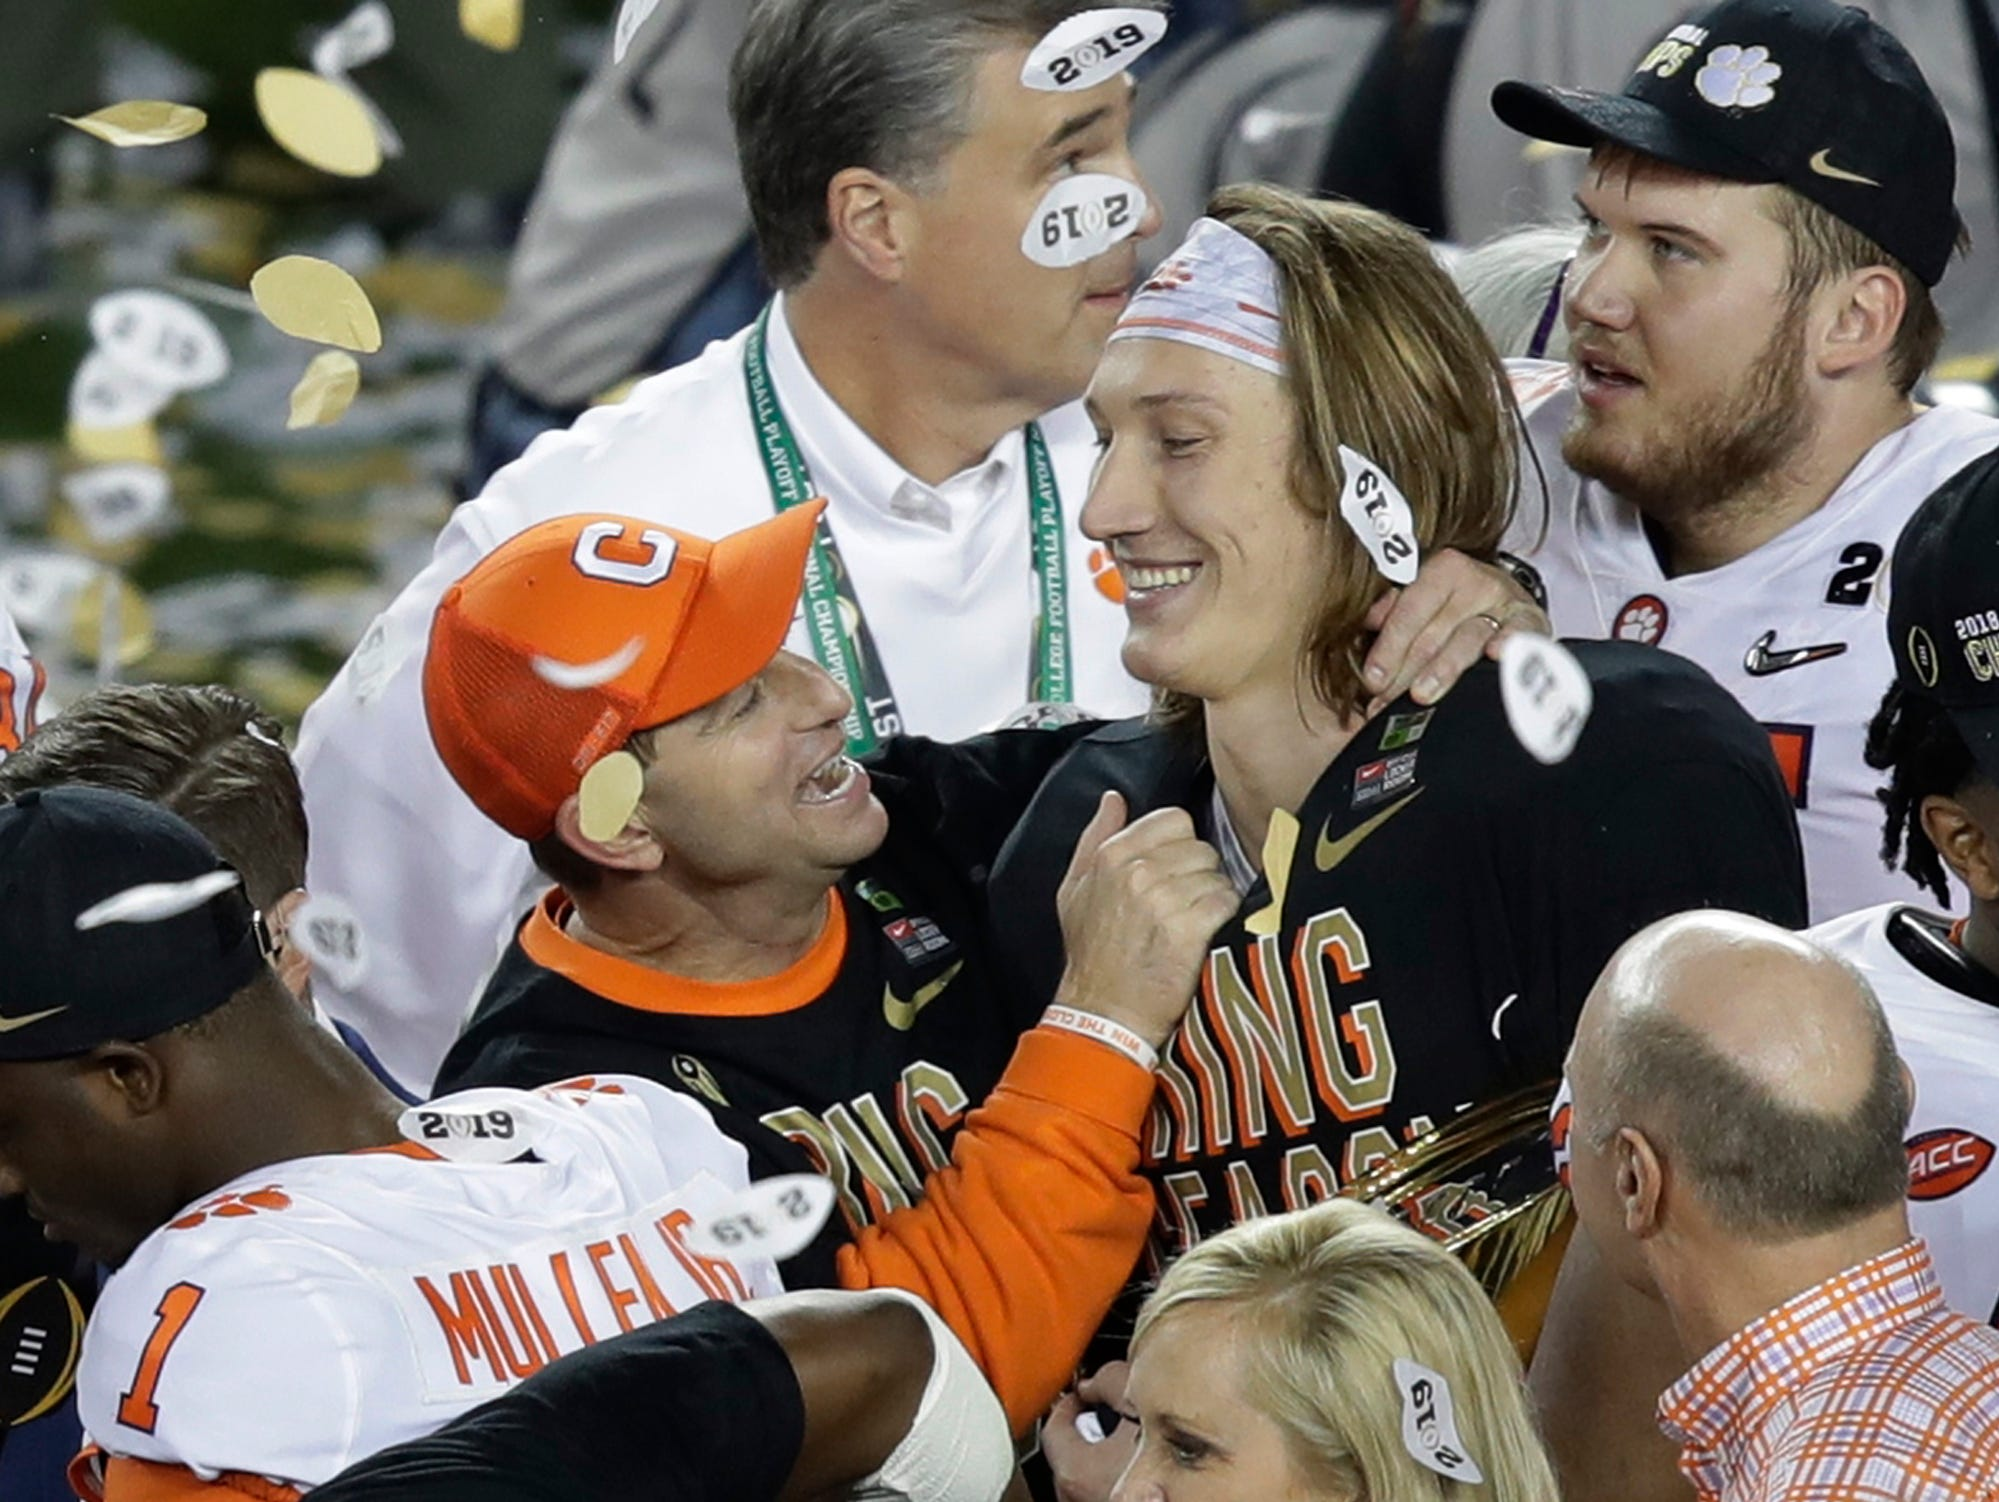 Clemson head coach Dabo Swinney celebrates with Trevor Lawrence after the NCAA college football playoff championship game against Alabama, Monday, Jan. 7, 2019, in Santa Clara, Calif. Clemson beat Alabama 44-16. (AP Photo/Jeff Chiu)